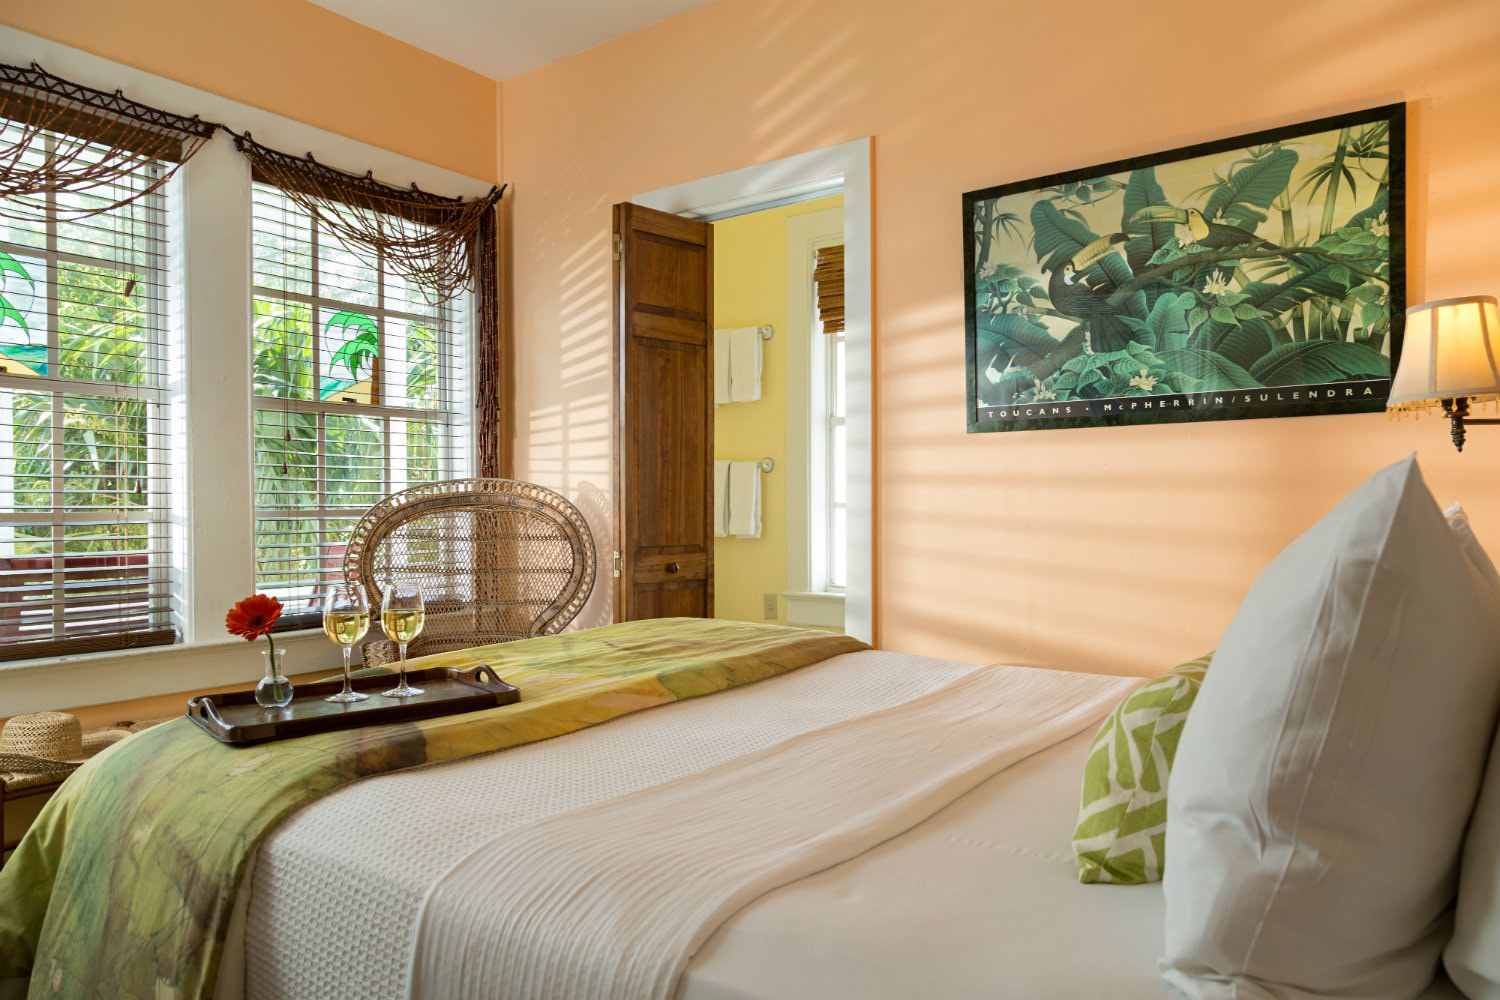 Classic Bedroom Escape Affordable Florida Keys Bed And Breakfast Accommodations In Key West